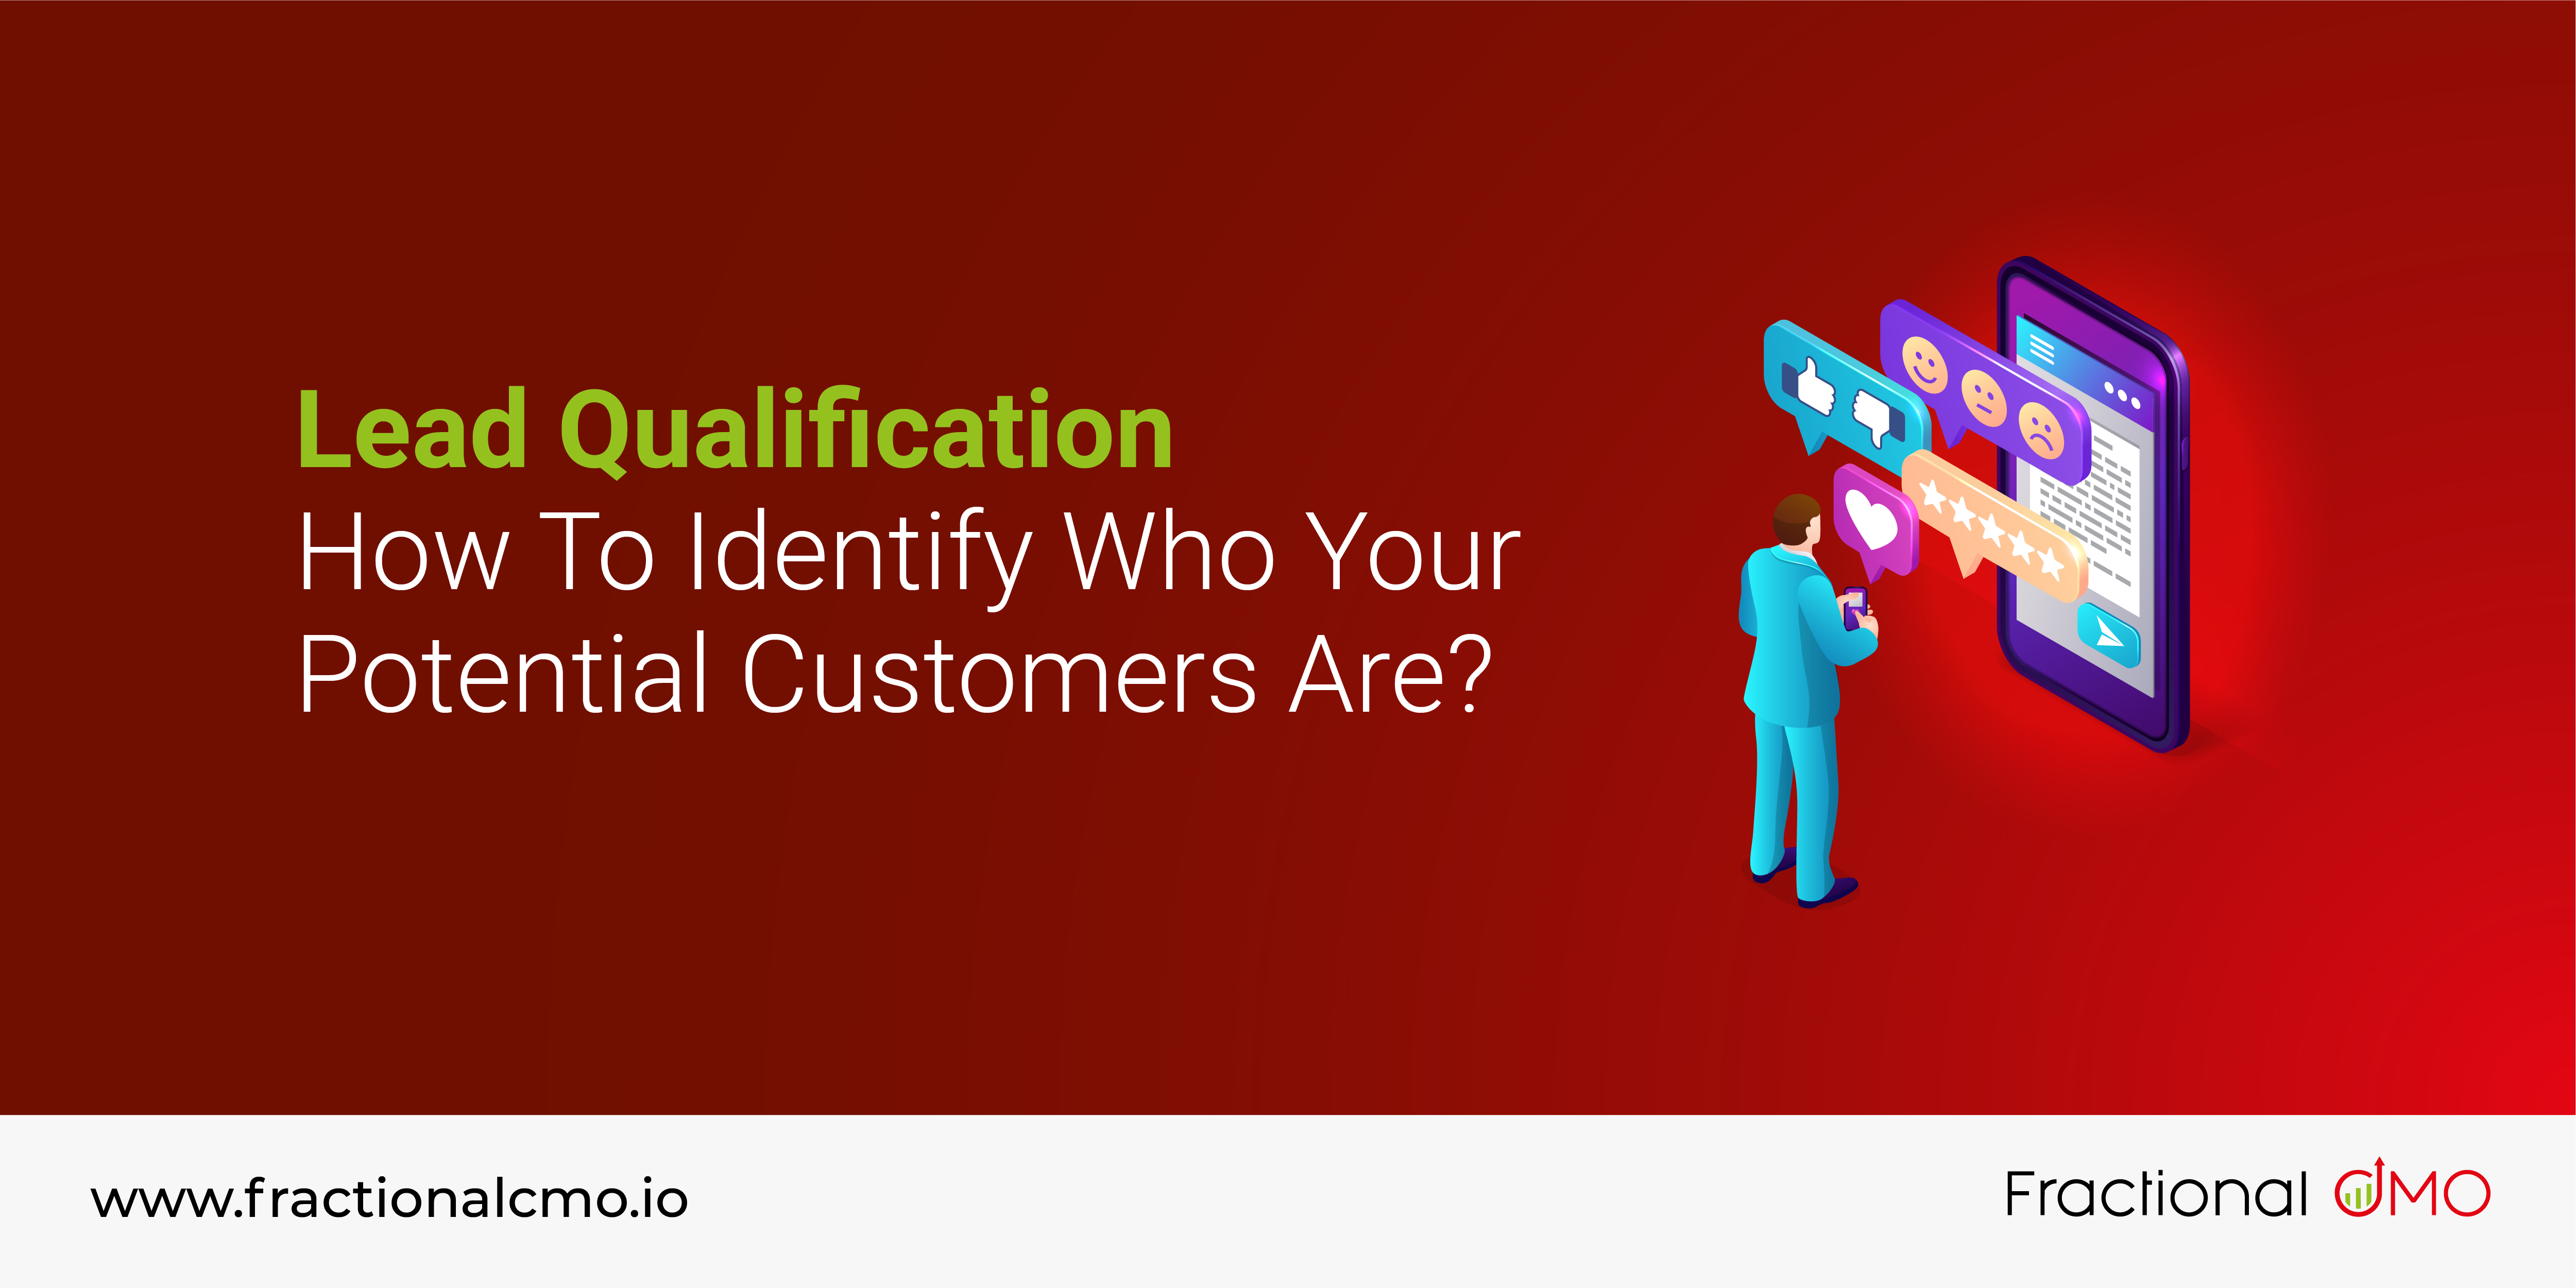 Lead Qualification : How To Identify Who Your Potential Customers Are?